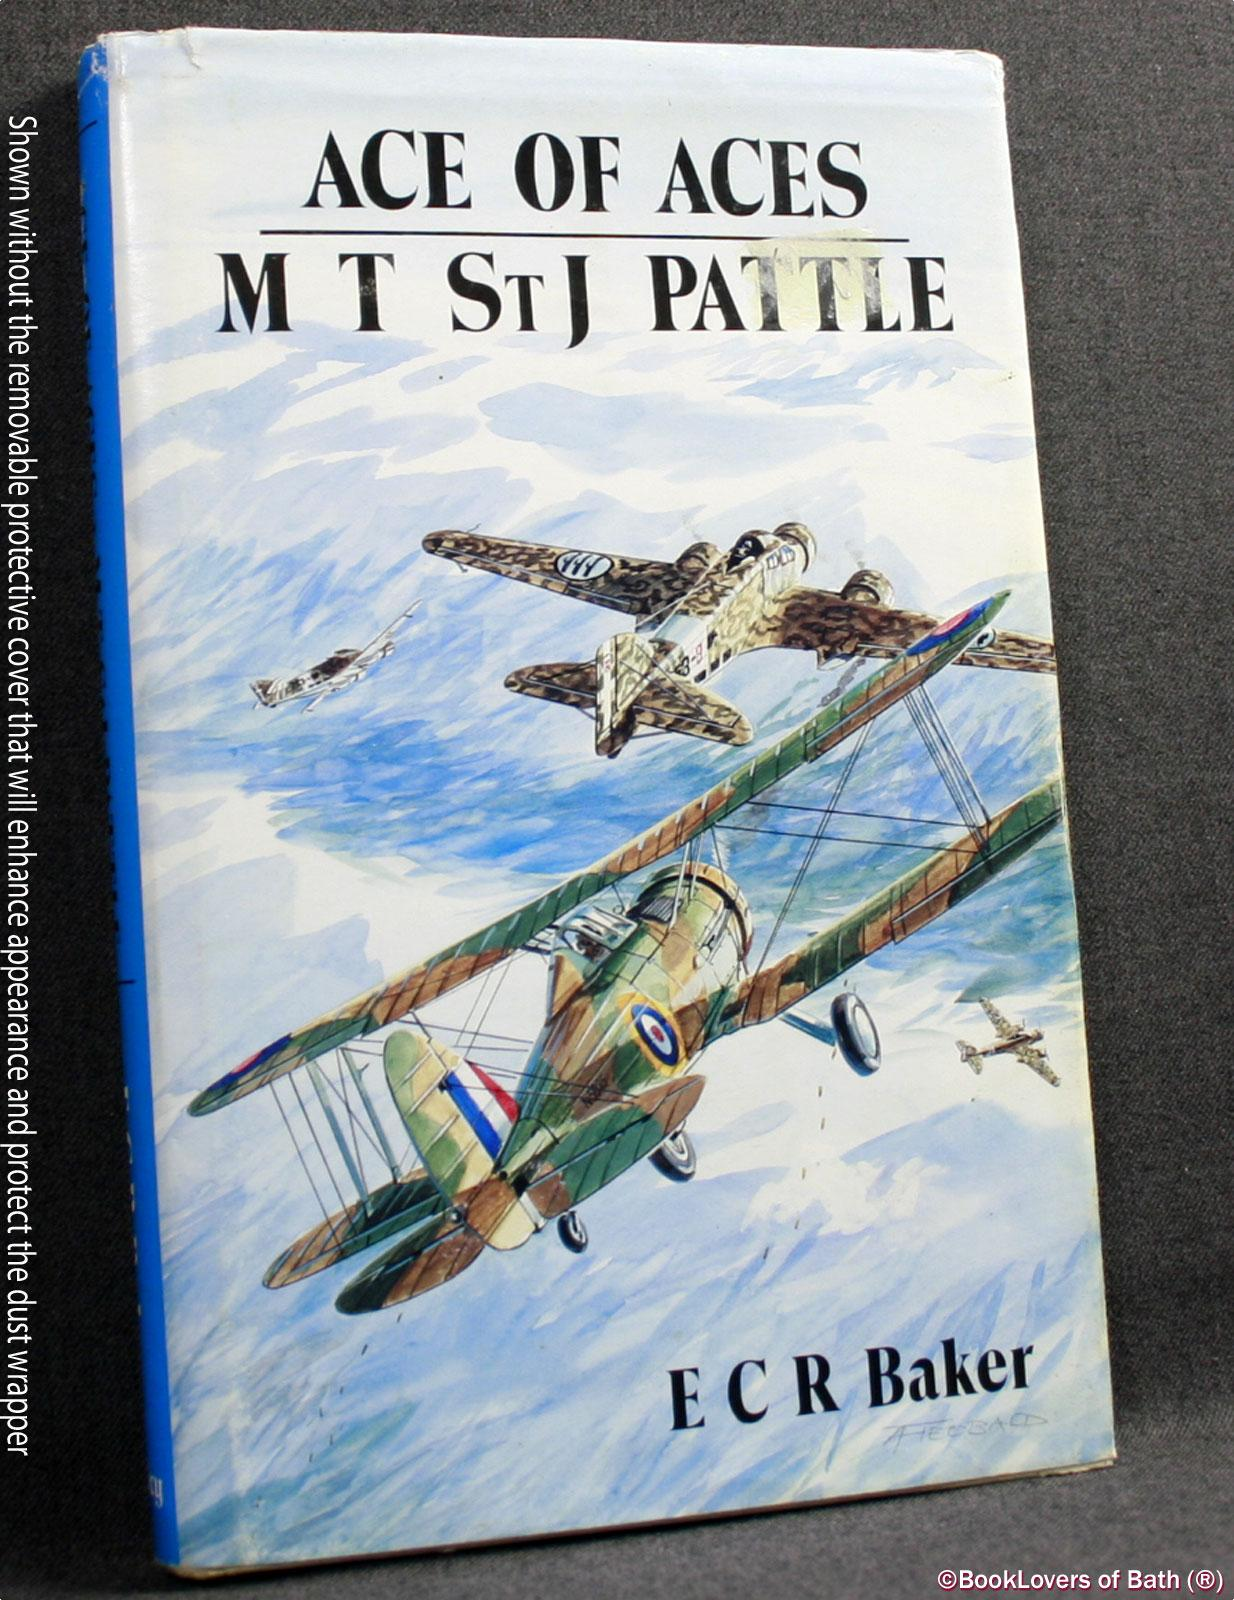 Ace of Aces: M. St. J. Pattle - Top Scoring Allied Pilot of WWII - E. C. R. [Edgar Charles Richard] Baker